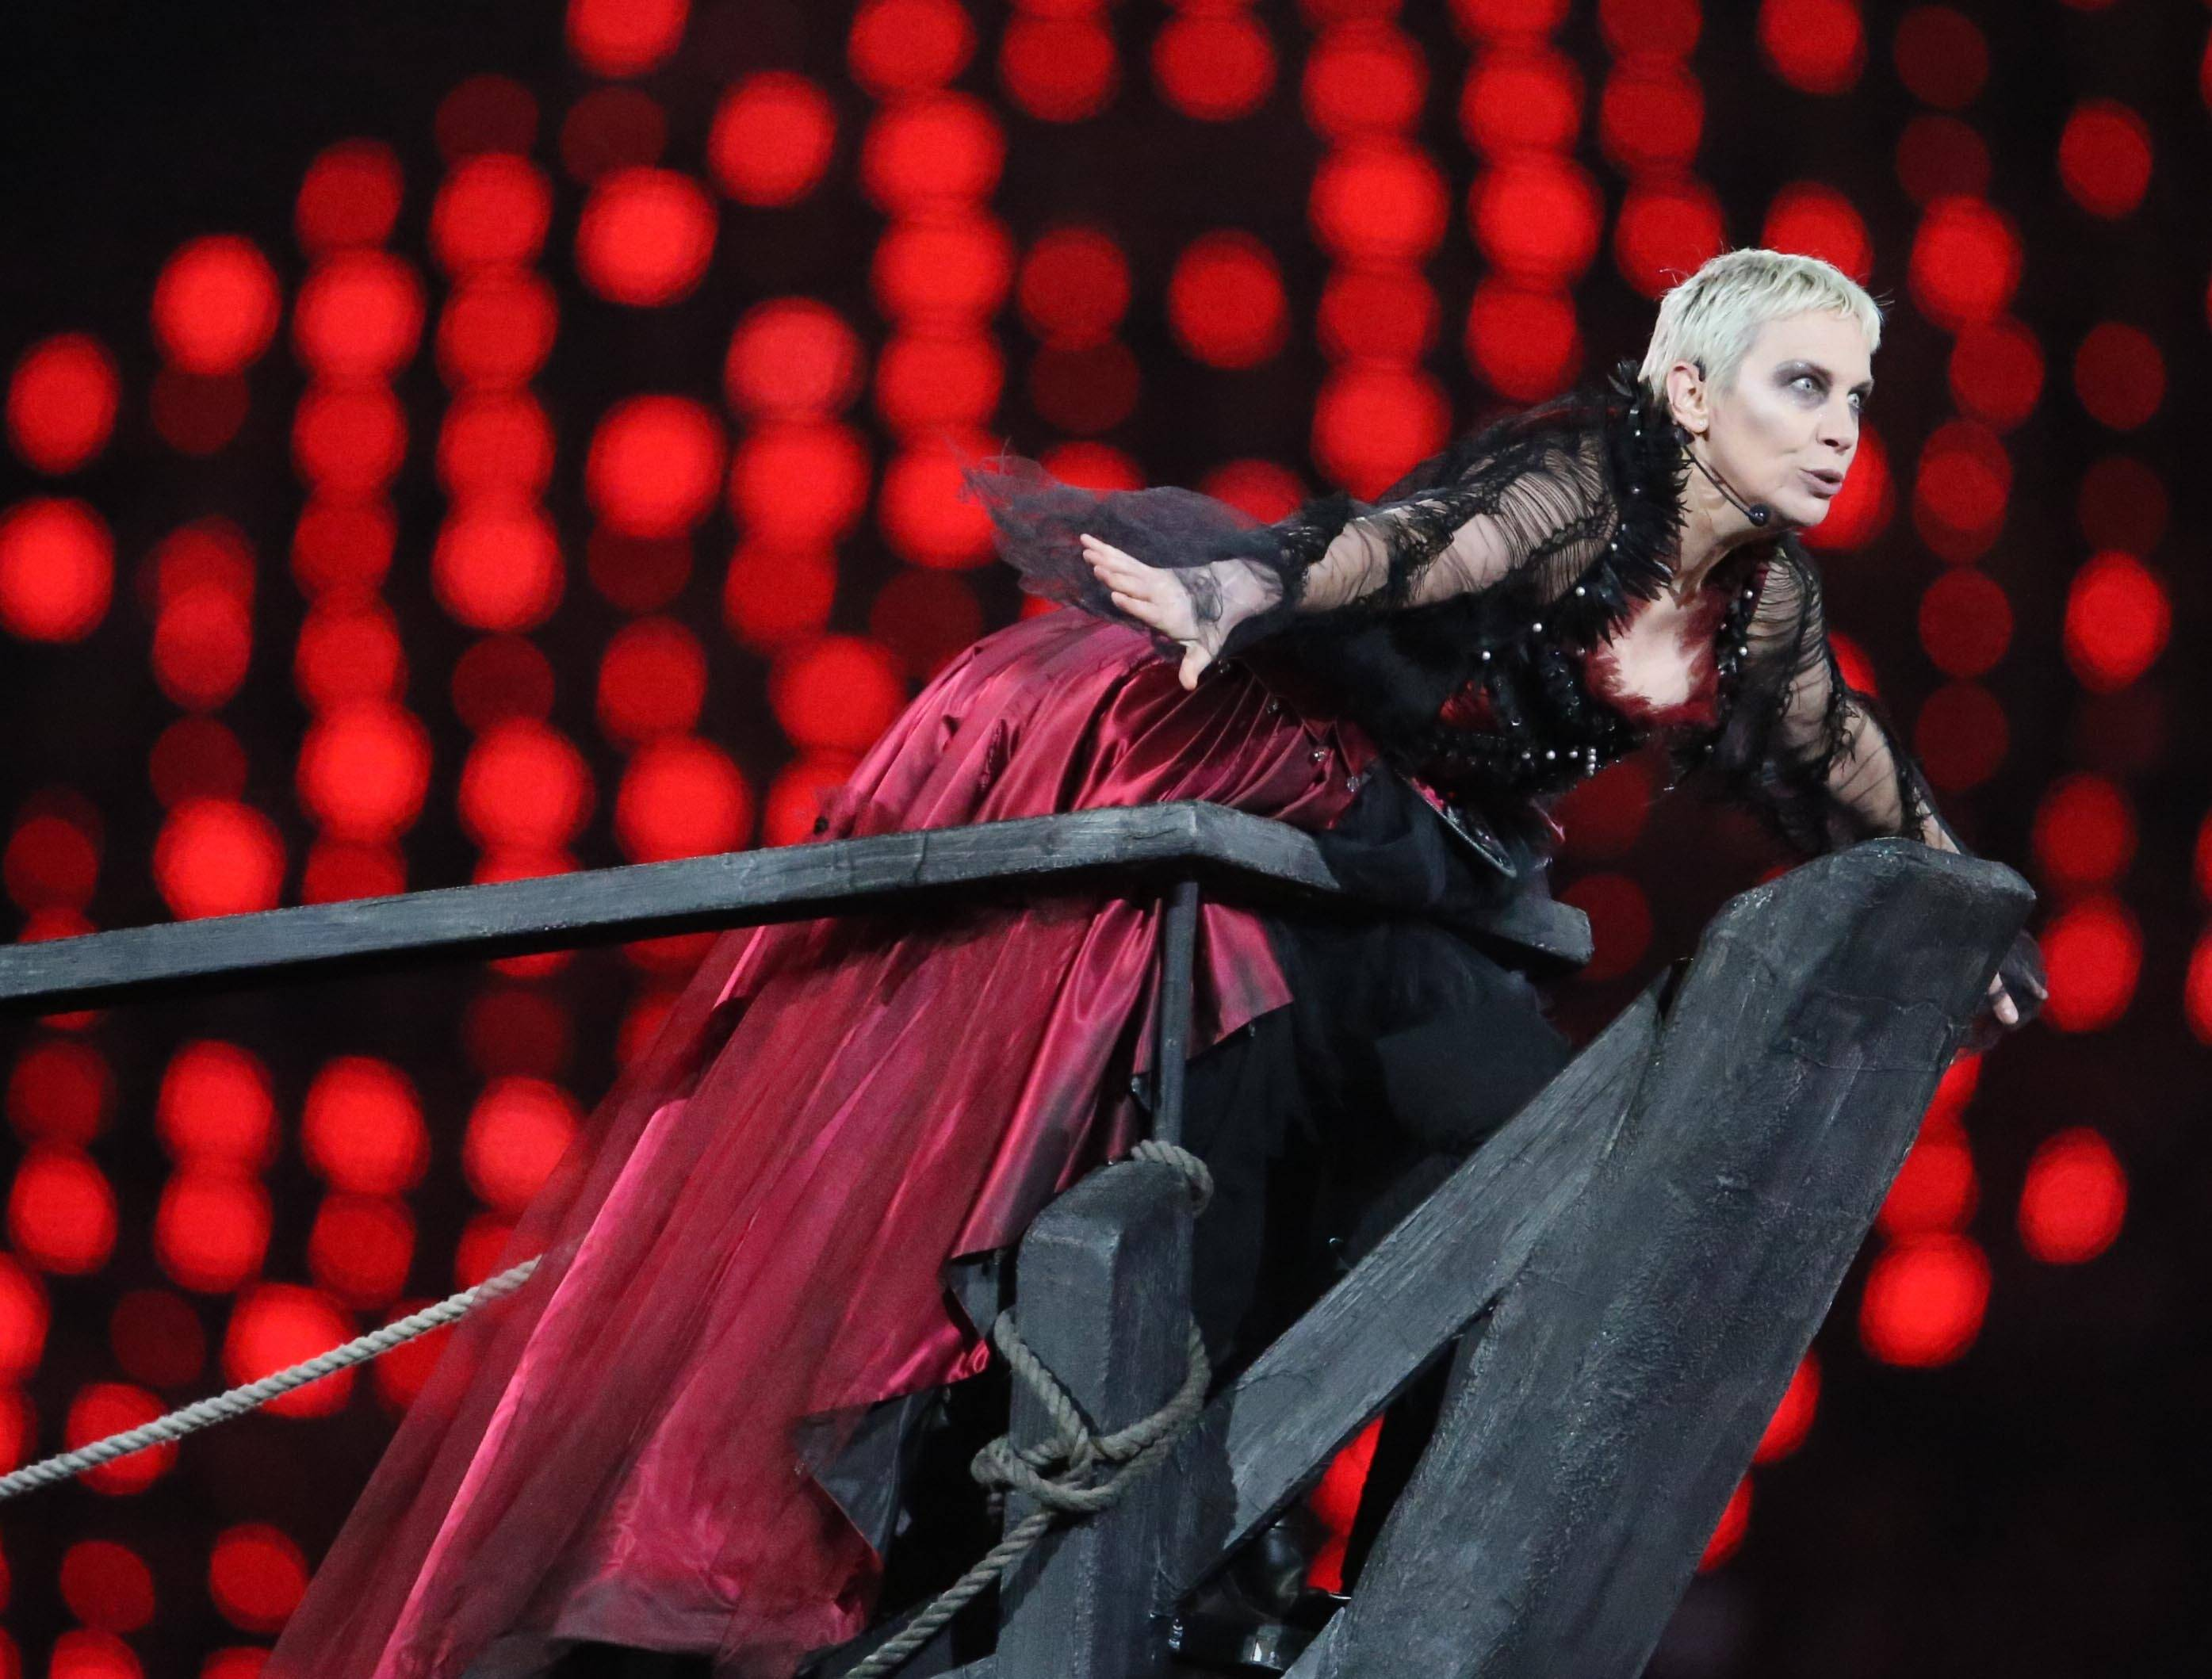 Photo taken on August 12, 2012 shows Annie Lennox performing at the Closing Ceremony of the London 2012 Olympic Games at the